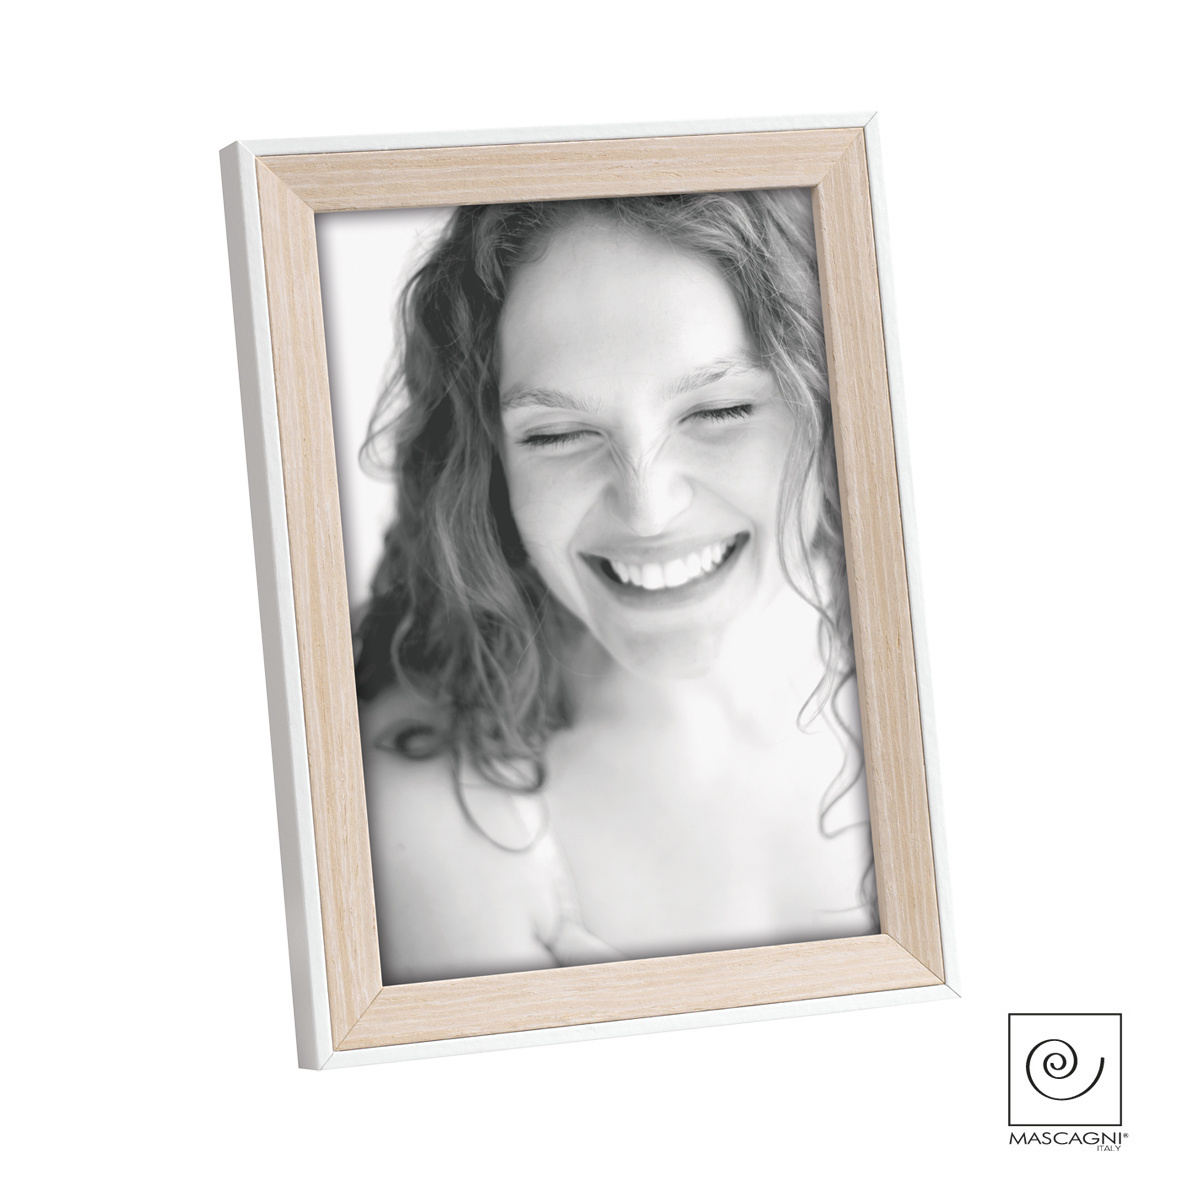 Art Mascagni A605 PHOTO FRAME 13X18